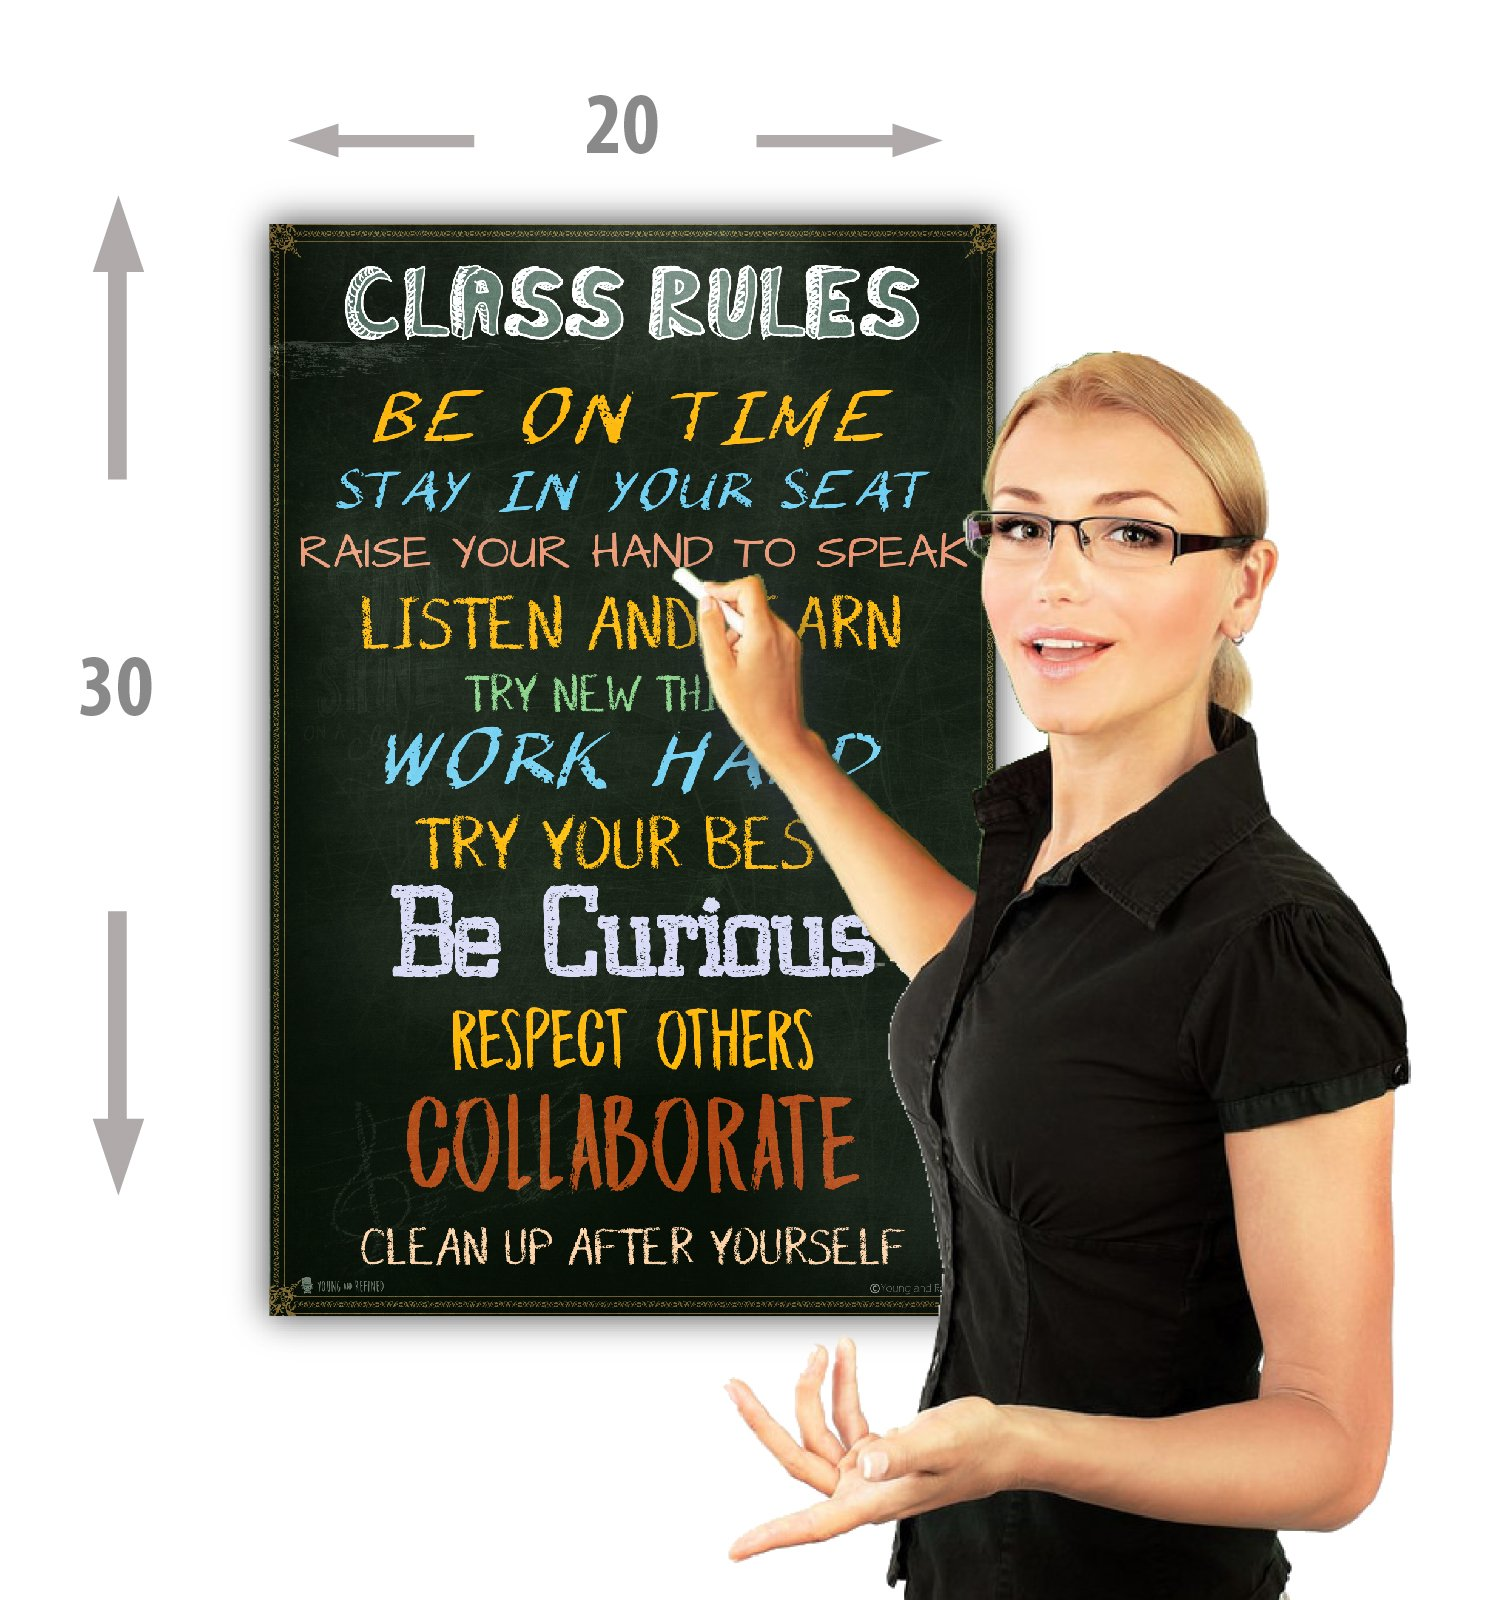 Classroom Rules sign chart LAMINATED EXTRA LARGE by Teachers for students learning in school study hall (20x30) by Young and refined (Image #3)